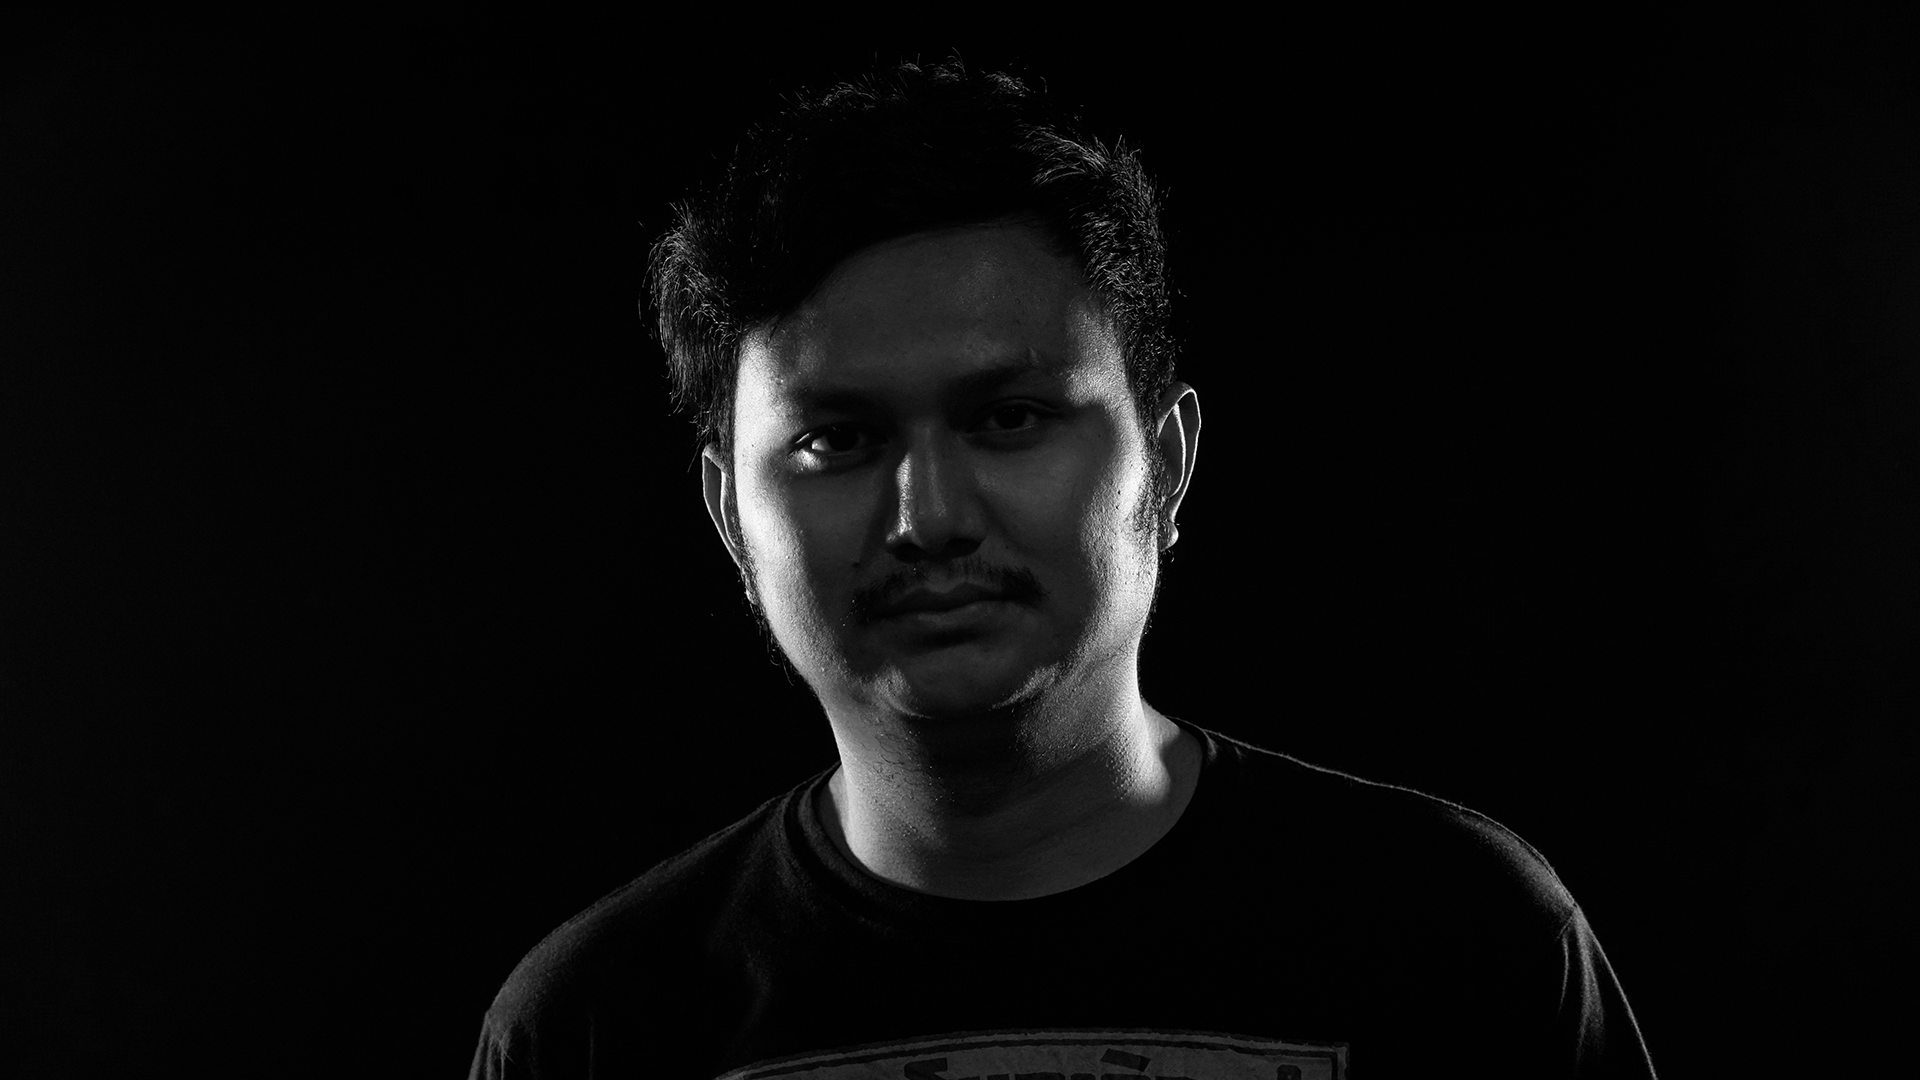 AUNG HEIN THET  FILM INSTRUCTOR  Aung has a sparkling childhood passion for film and got his first diploma in TV broadcasting from the Myanmar Media Development Center in 2013. Since then he has been working as a freelance film director and Joined the Turning Tables Myanmar team in the fall of 2015. Here he is responsible for the production of music videos and conducting participatory film trainings.